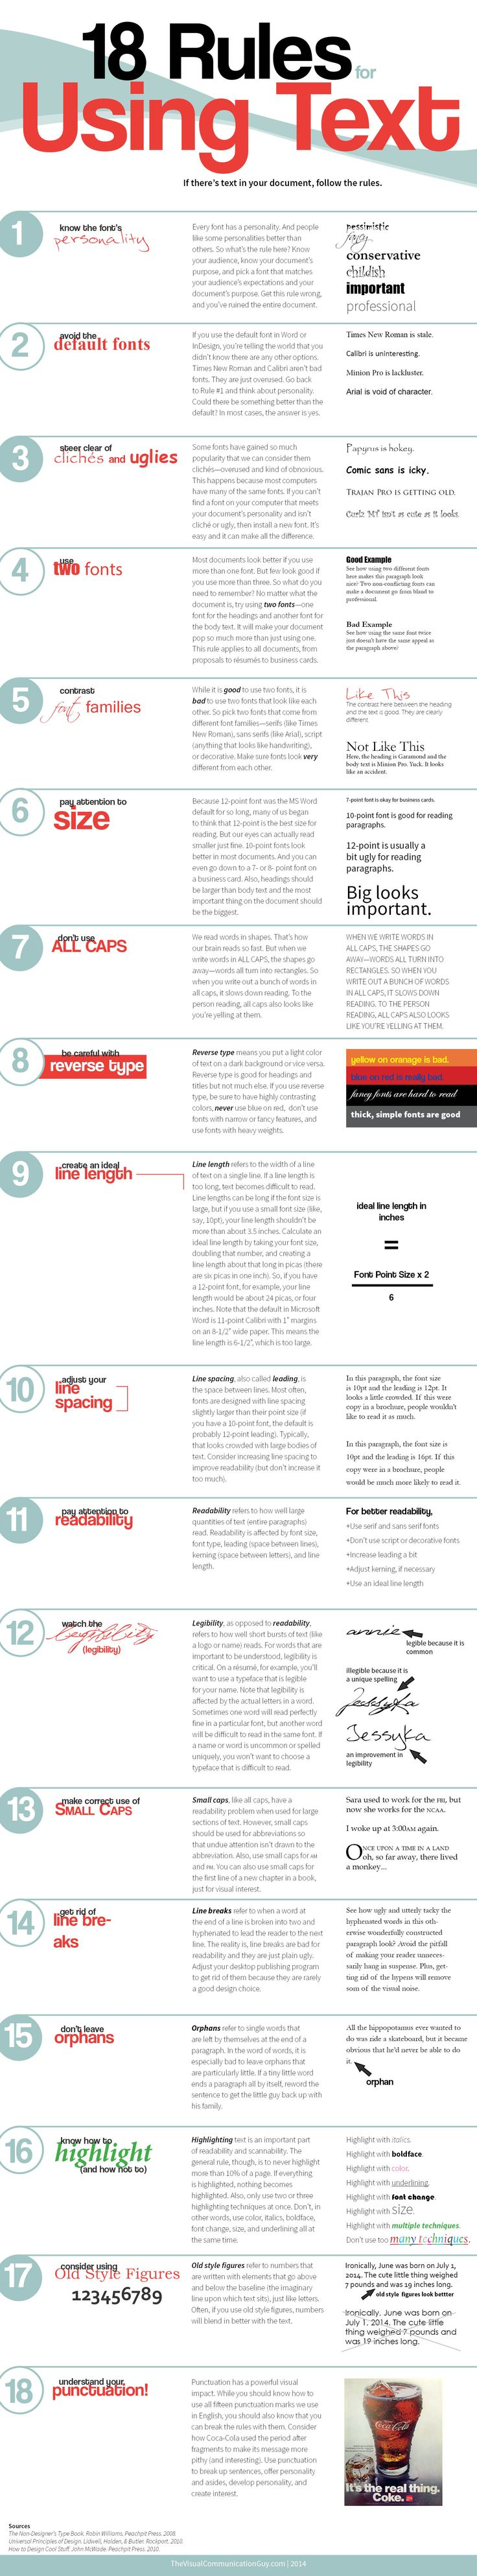 One of the most fundamental components to making a document visually appealing (and readable) is to make sure the text is designed well. And while there are infinite possibilities for what you can do with your fonts and sizes and organization, if you follow these eighteen rules, your text can transform your document from lackluster to professional to powerful.  #typography